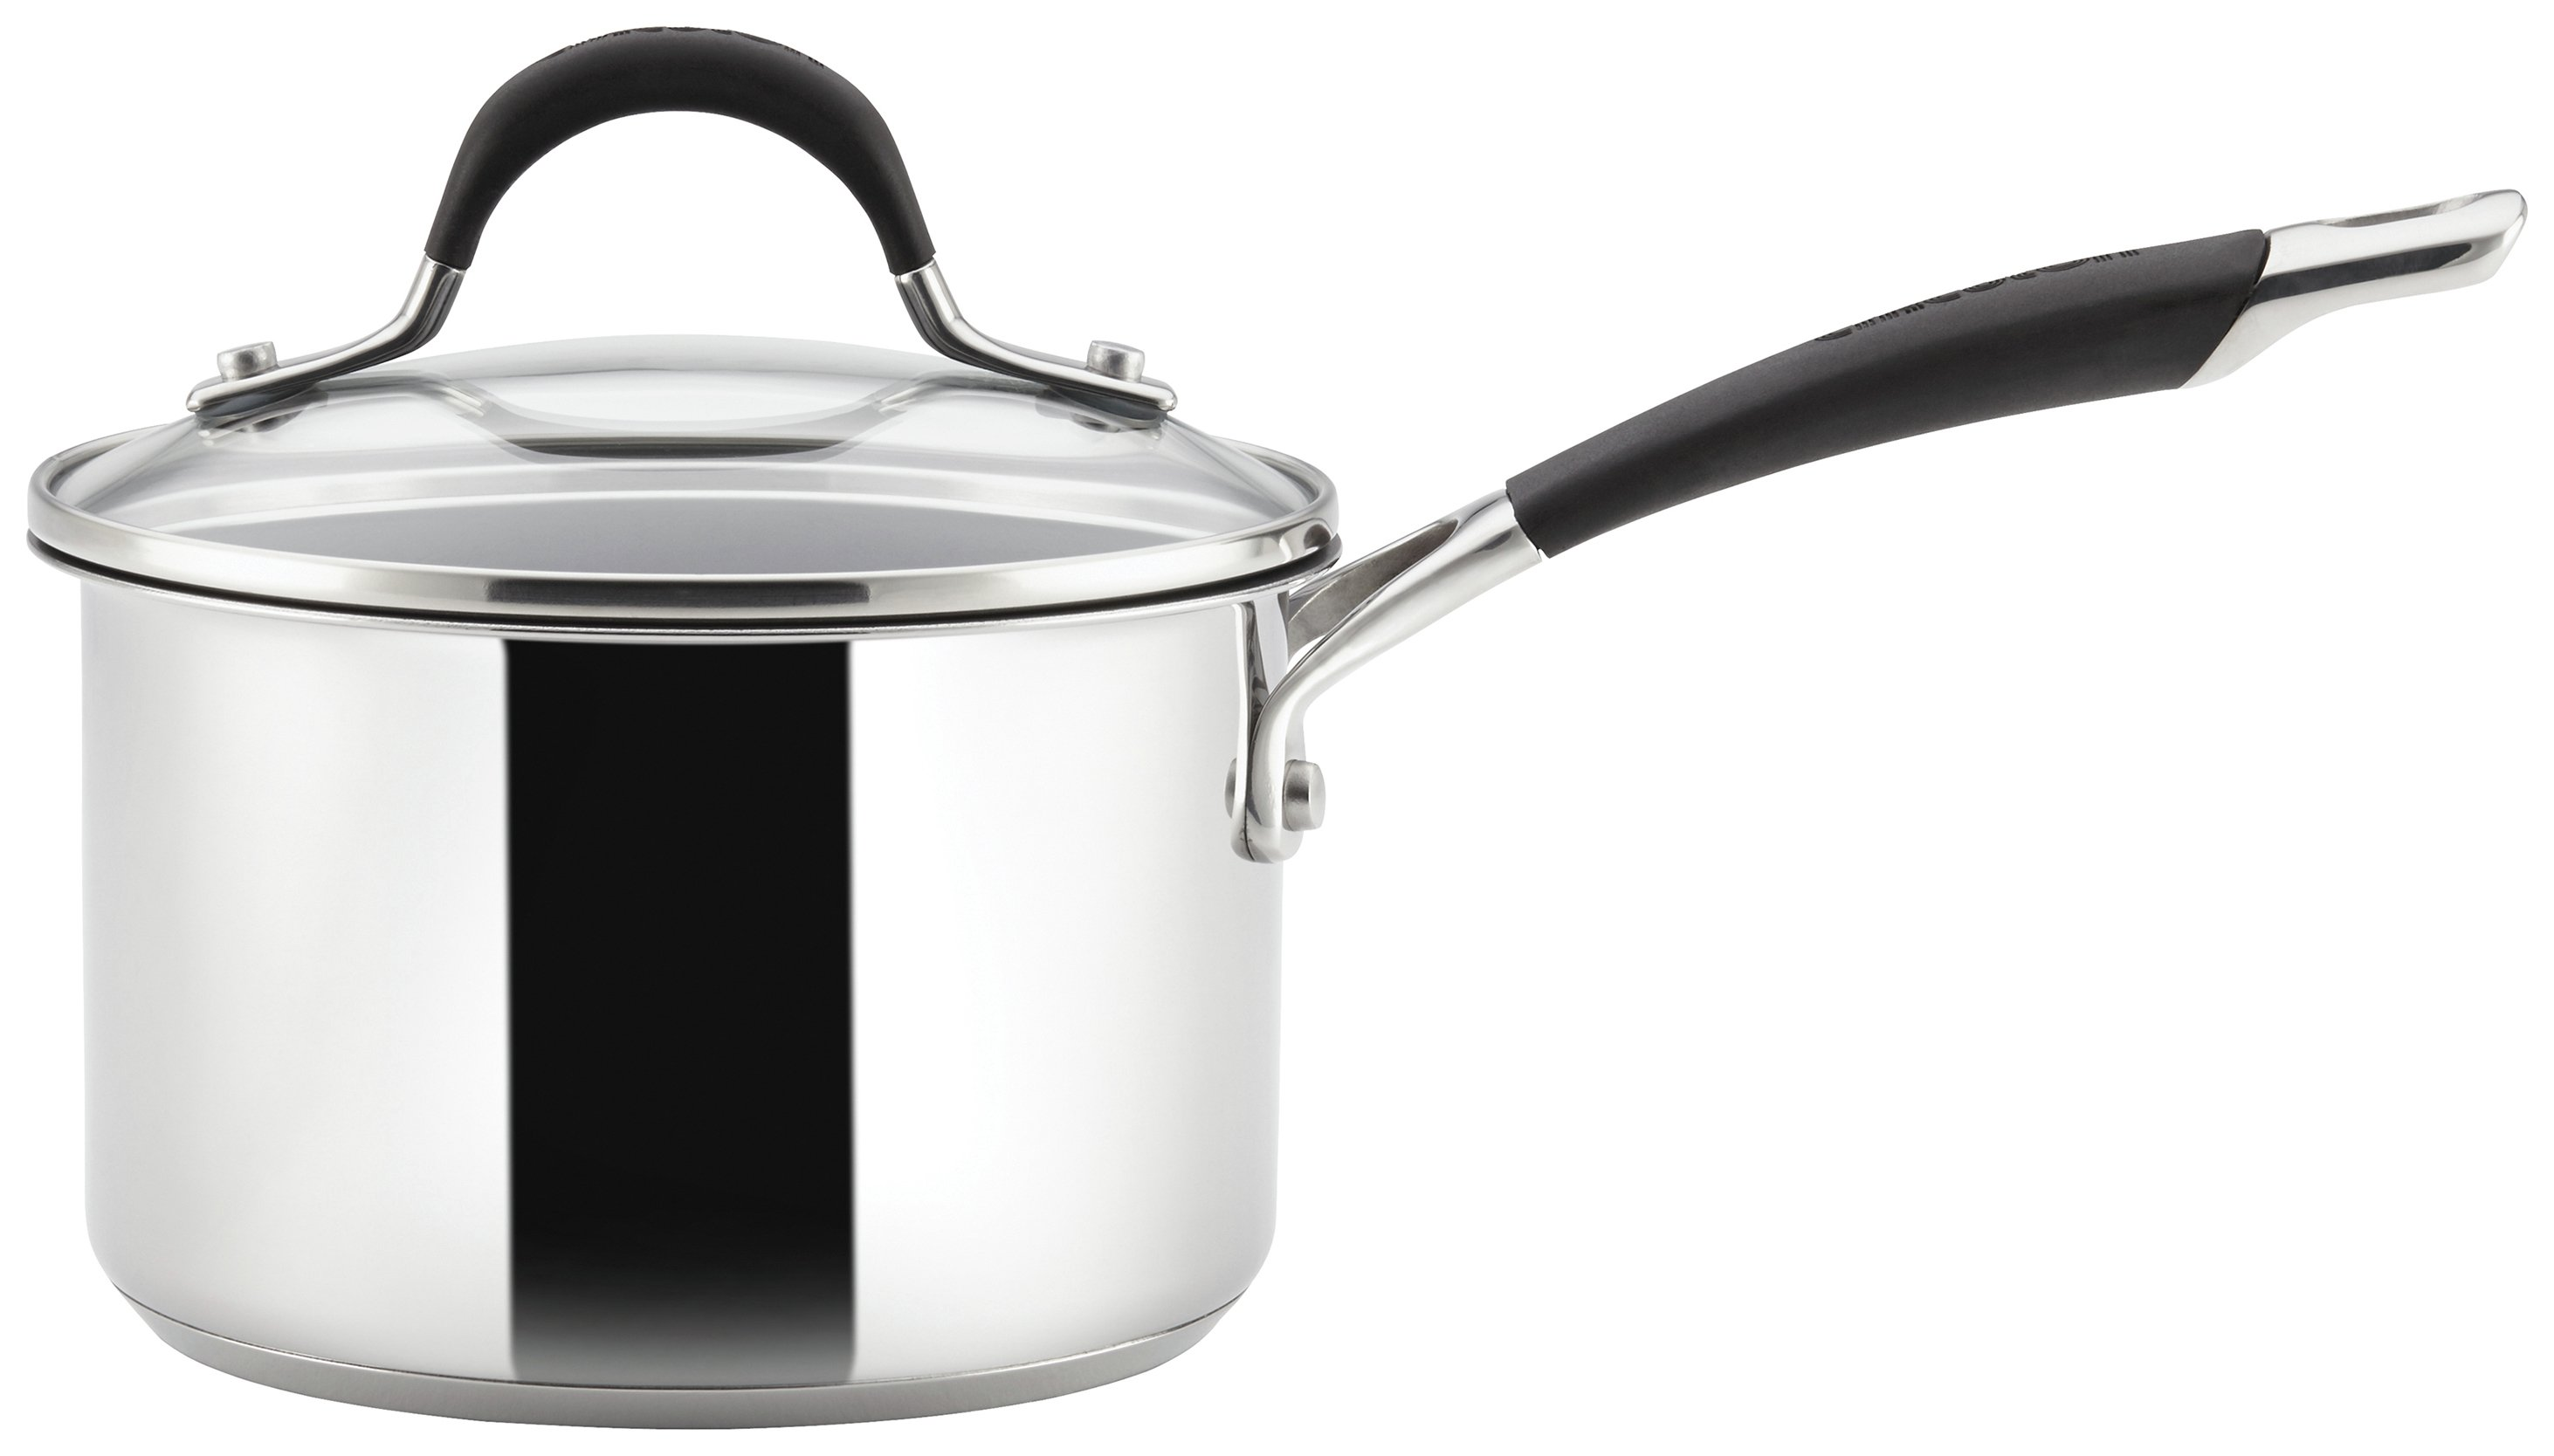 Circulon Momentum 18cm Stainless Steel Covered Saucepan